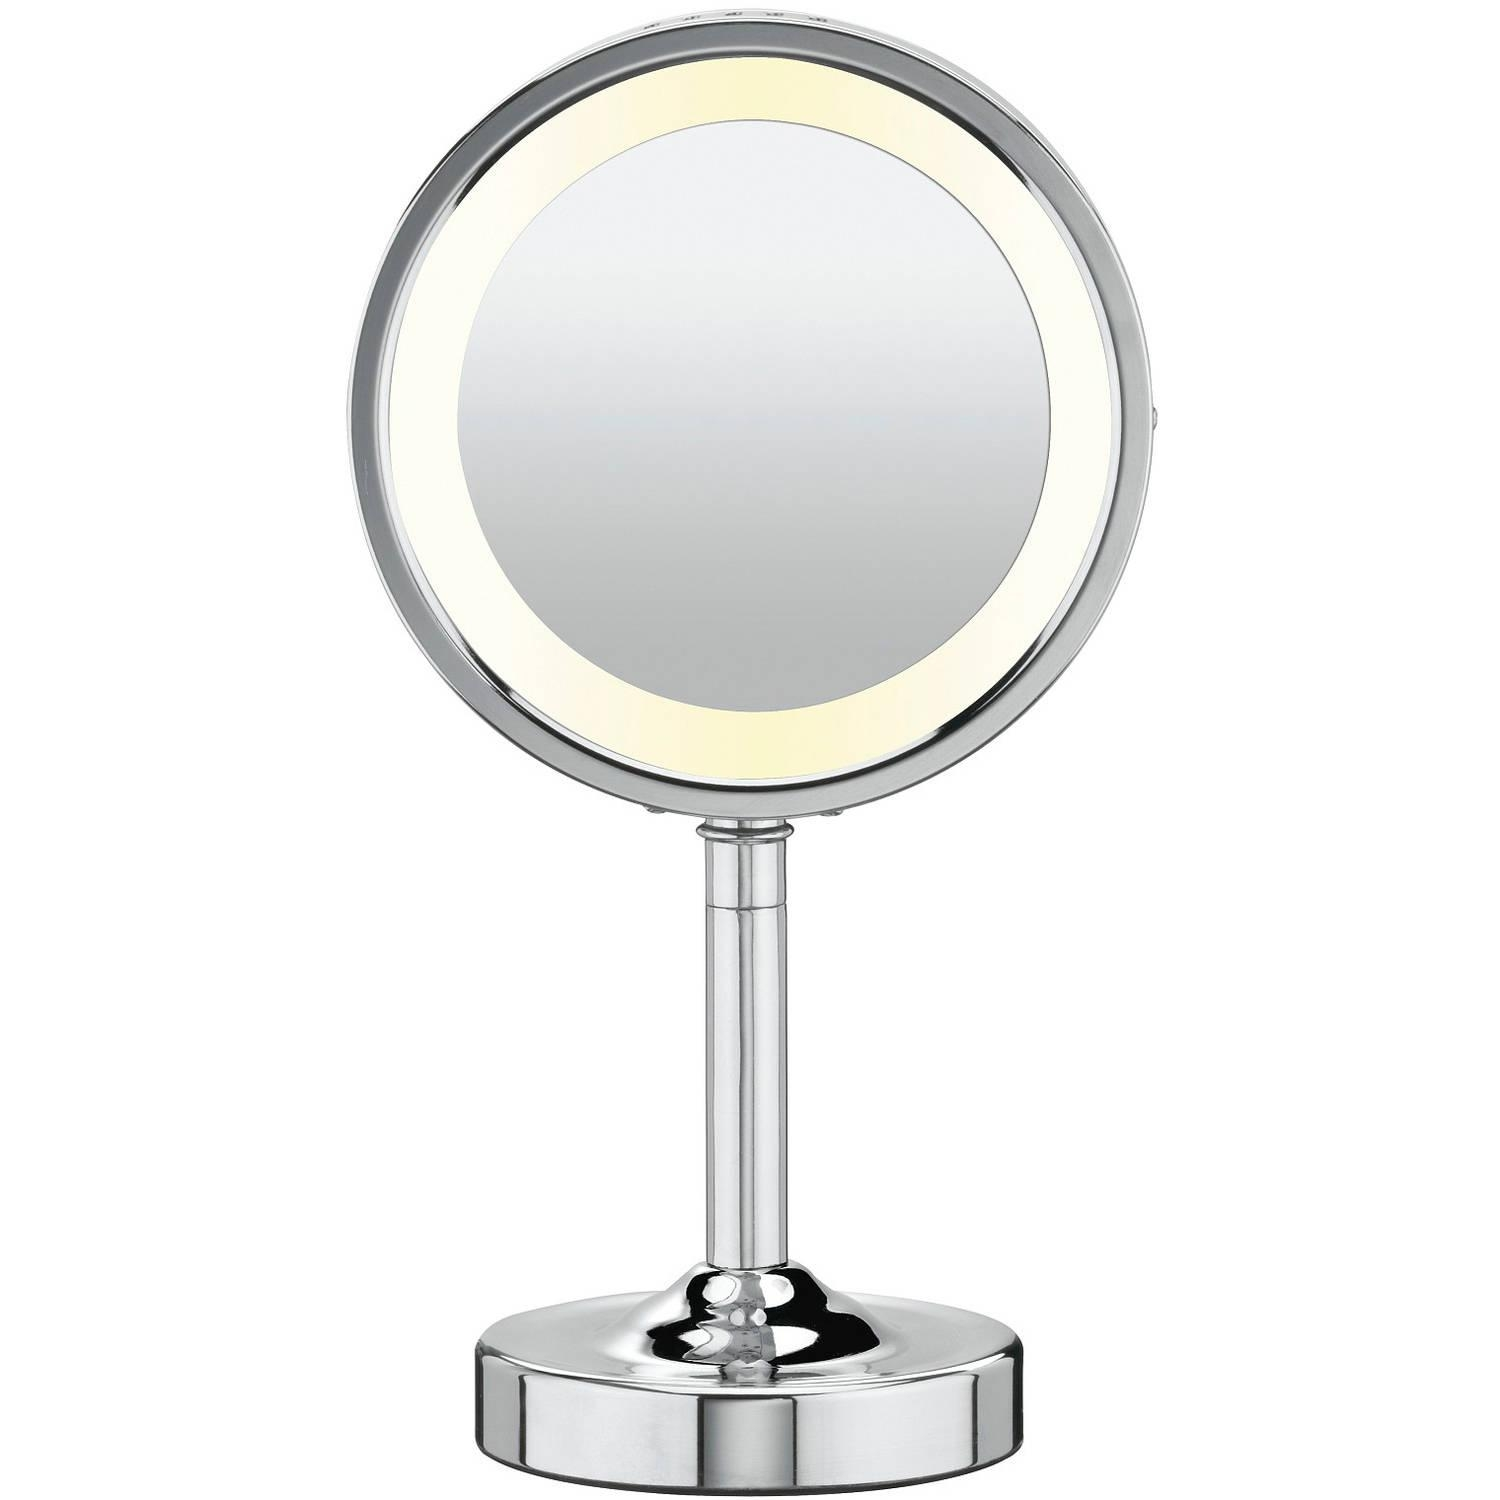 Accessories: Beautiful Conair Makeup Mirror For Your Perfect Inside Magnified Vanity Mirrors (Image 1 of 20)